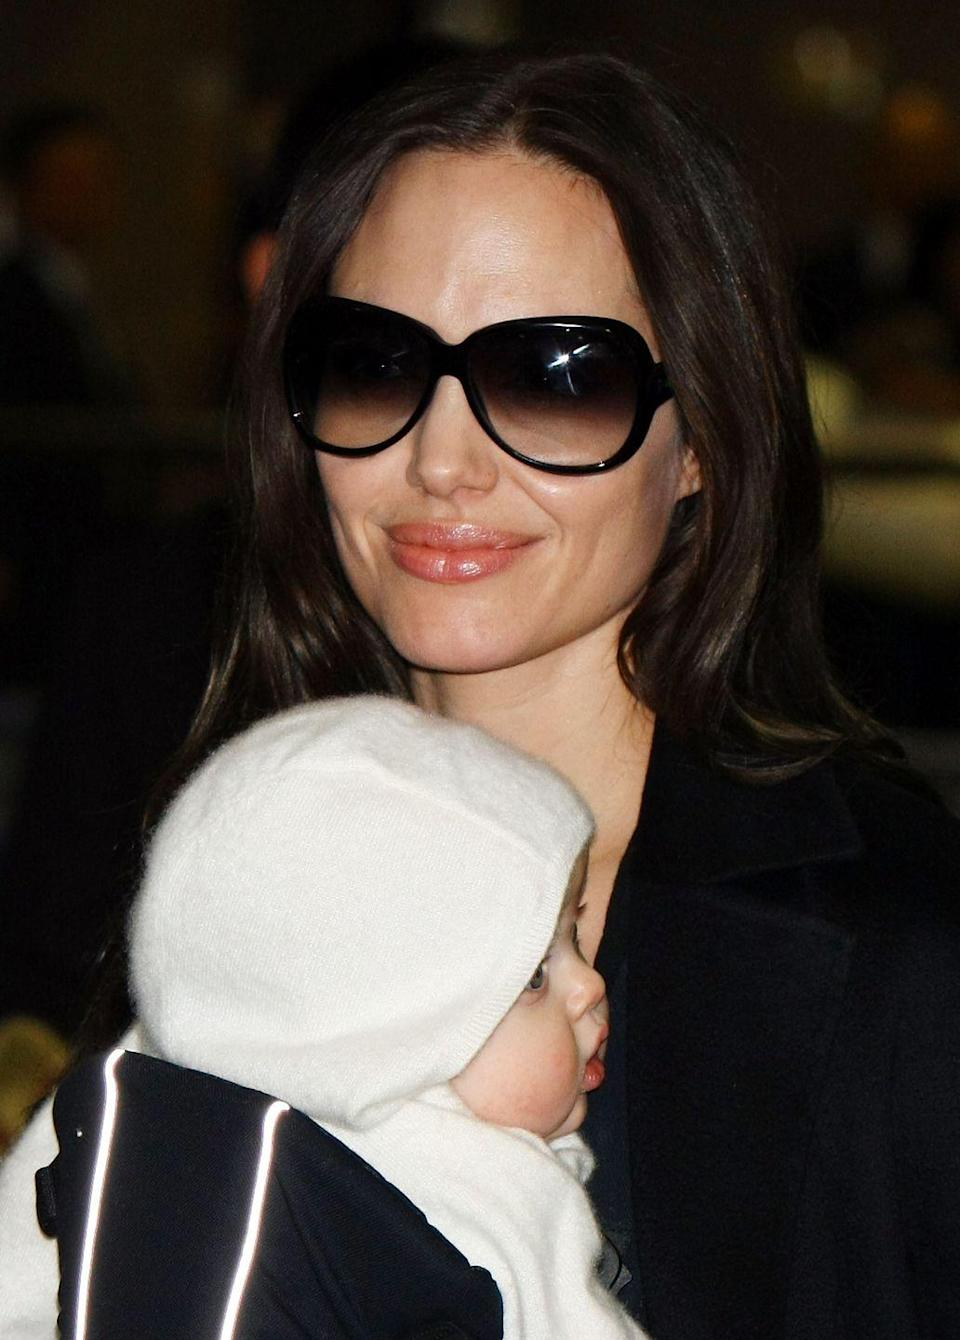 <p>Parents still loved Jacob, Michael, Emily, and Isabella but Ethan and Isabella also stole top 3 spots. But another major name that year was Shiloh. Brad Pitt and Angelina Jolie gave the name to their first biological child in May 2006, so by 2007, the name came blasting onto the charts at 788 — and rising.</p>